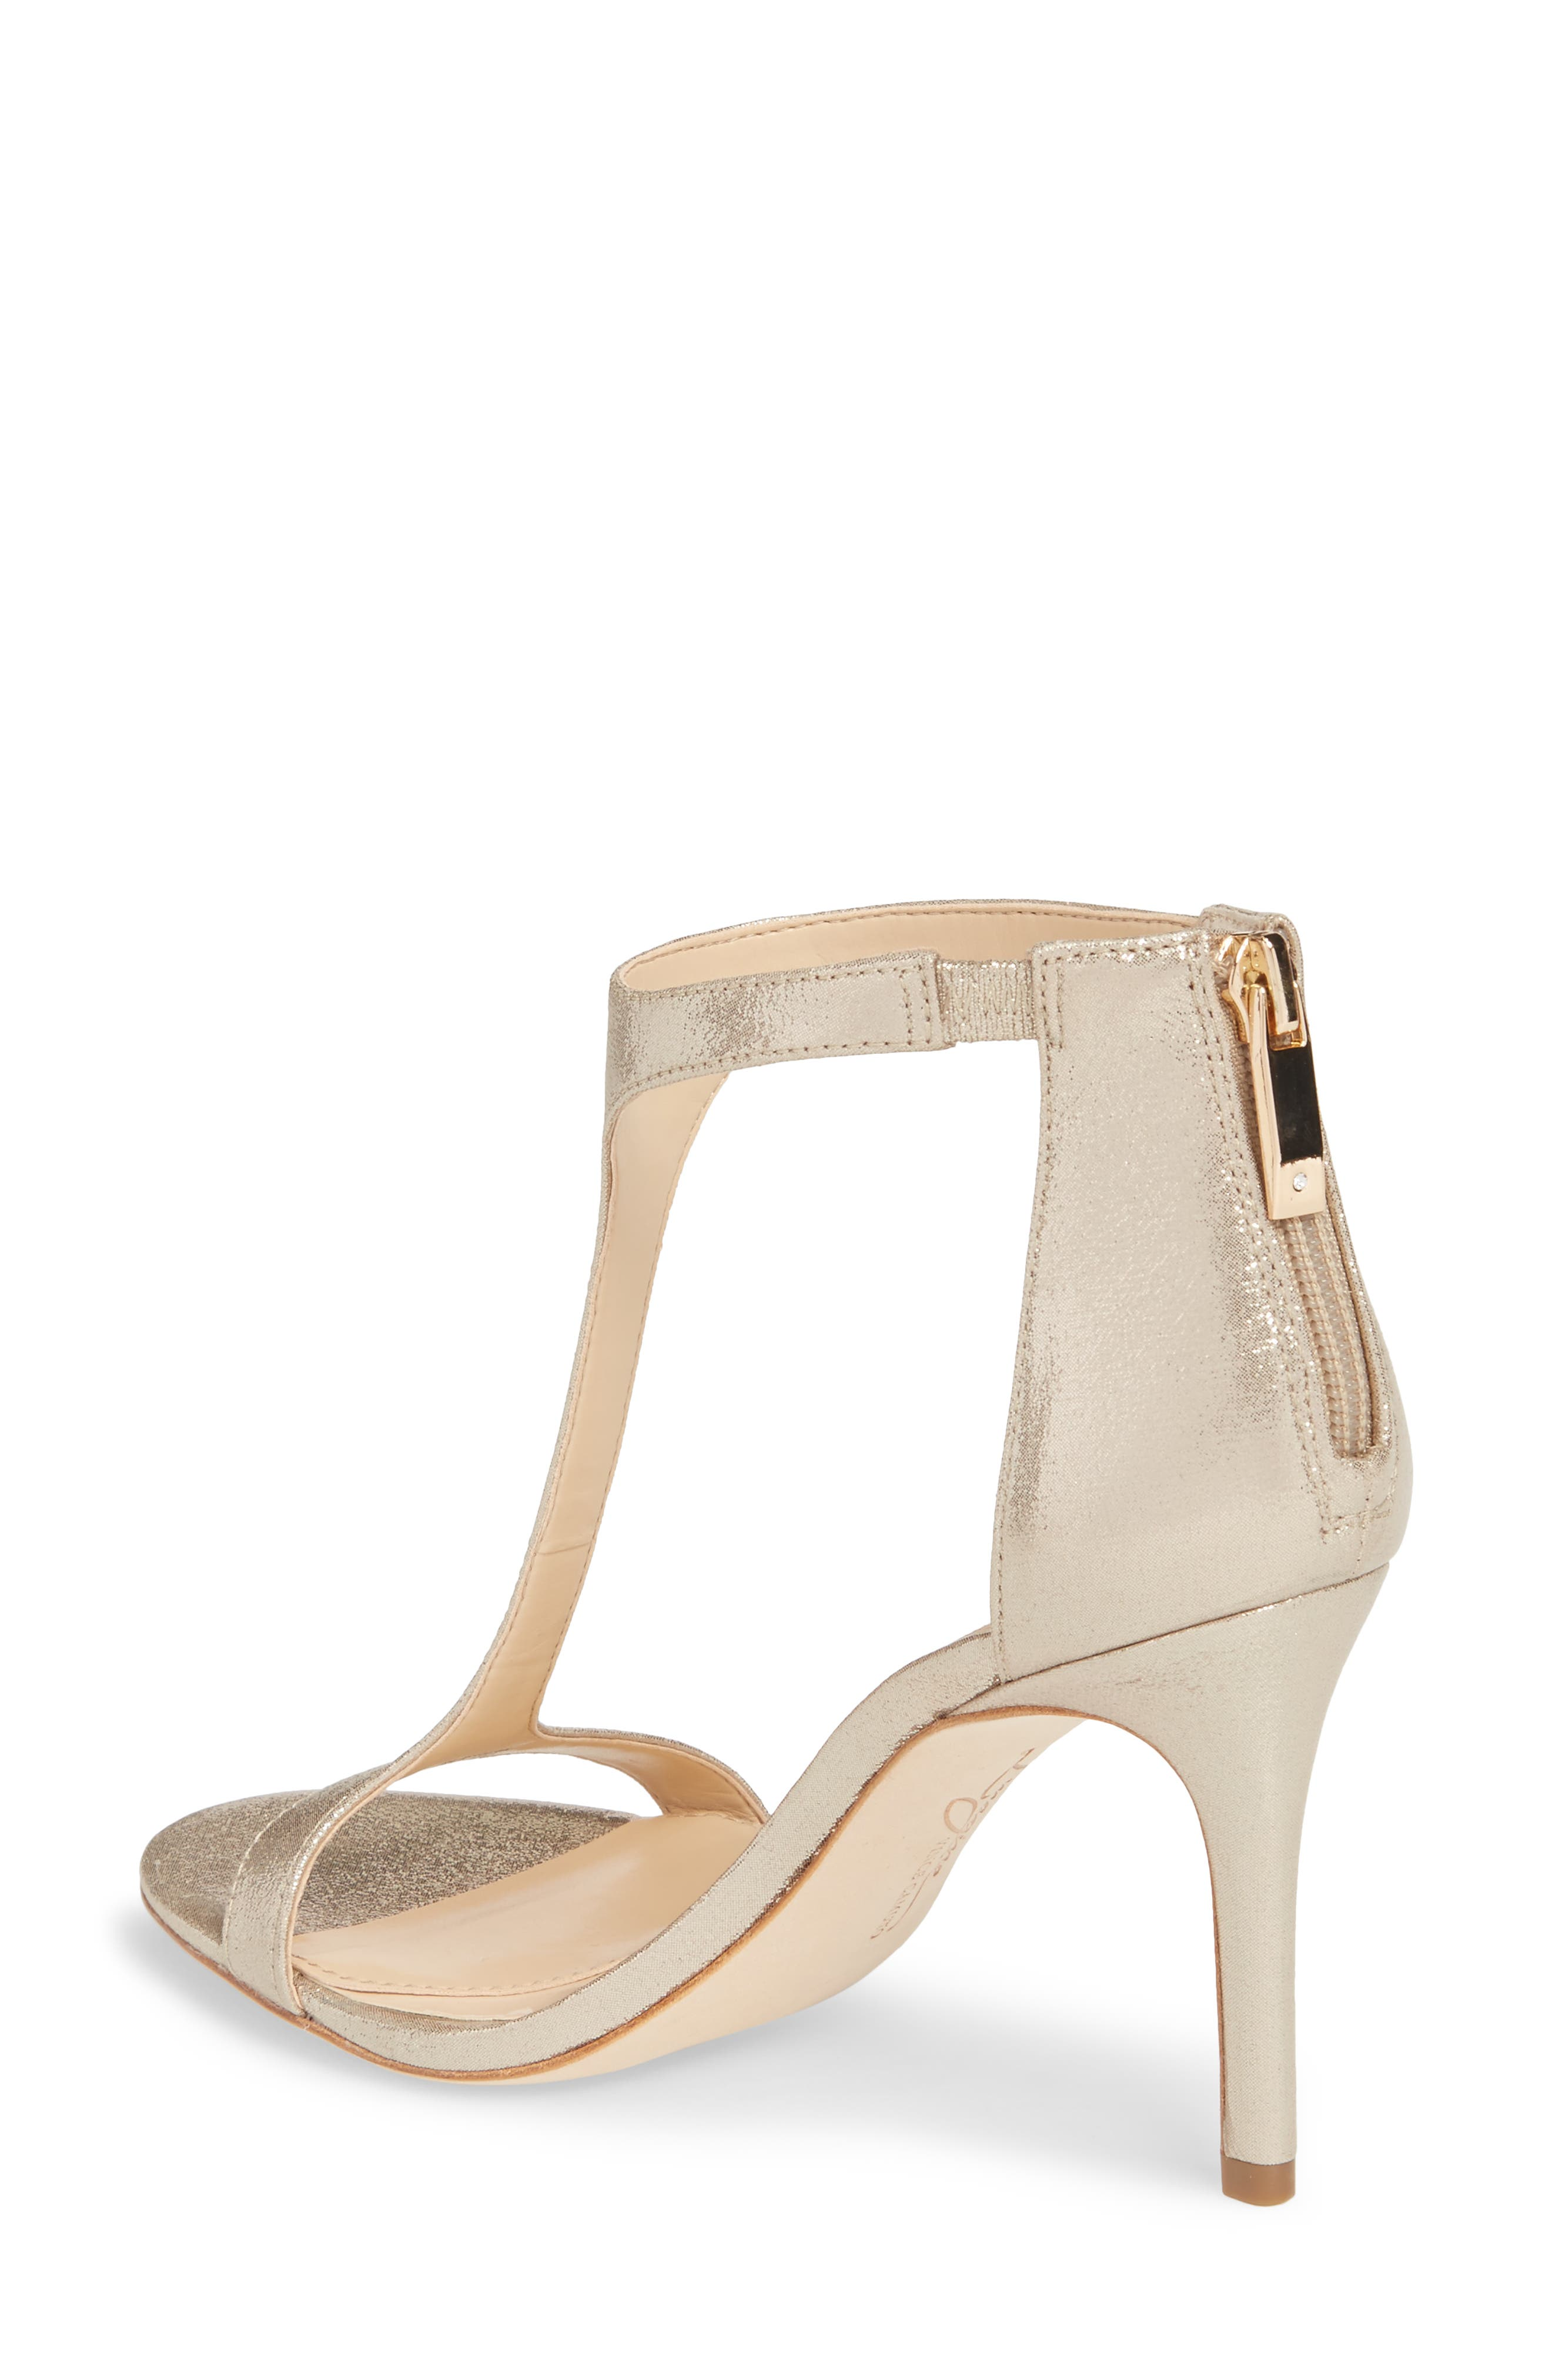 'Phoebe' Embellished T-Strap Sandal,                             Alternate thumbnail 2, color,                             Gold Satin